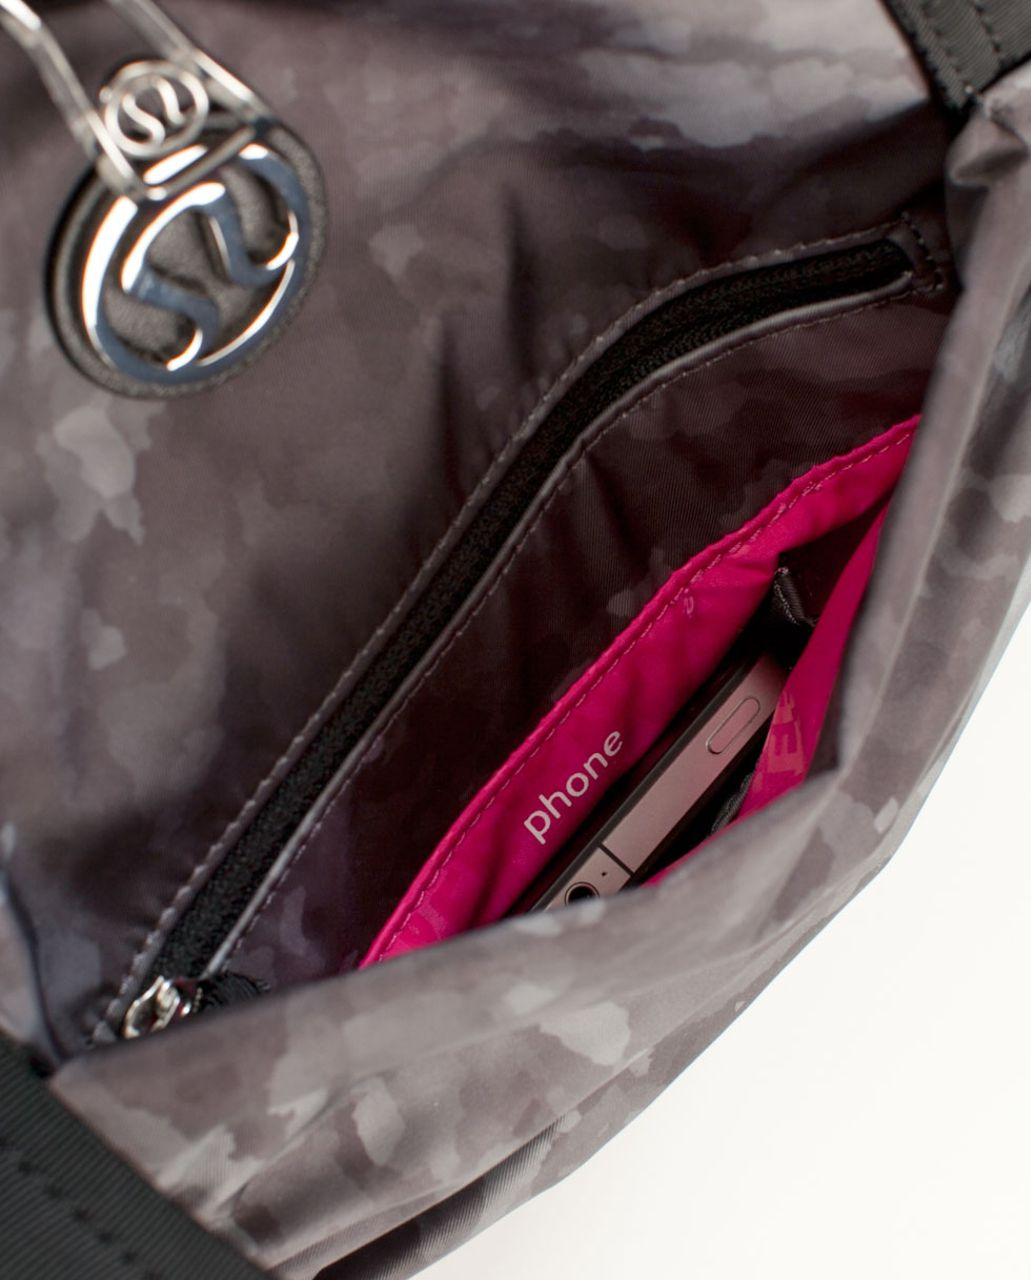 Lululemon Destined for Greatness Duffel - Deep Coal Creekside Camo